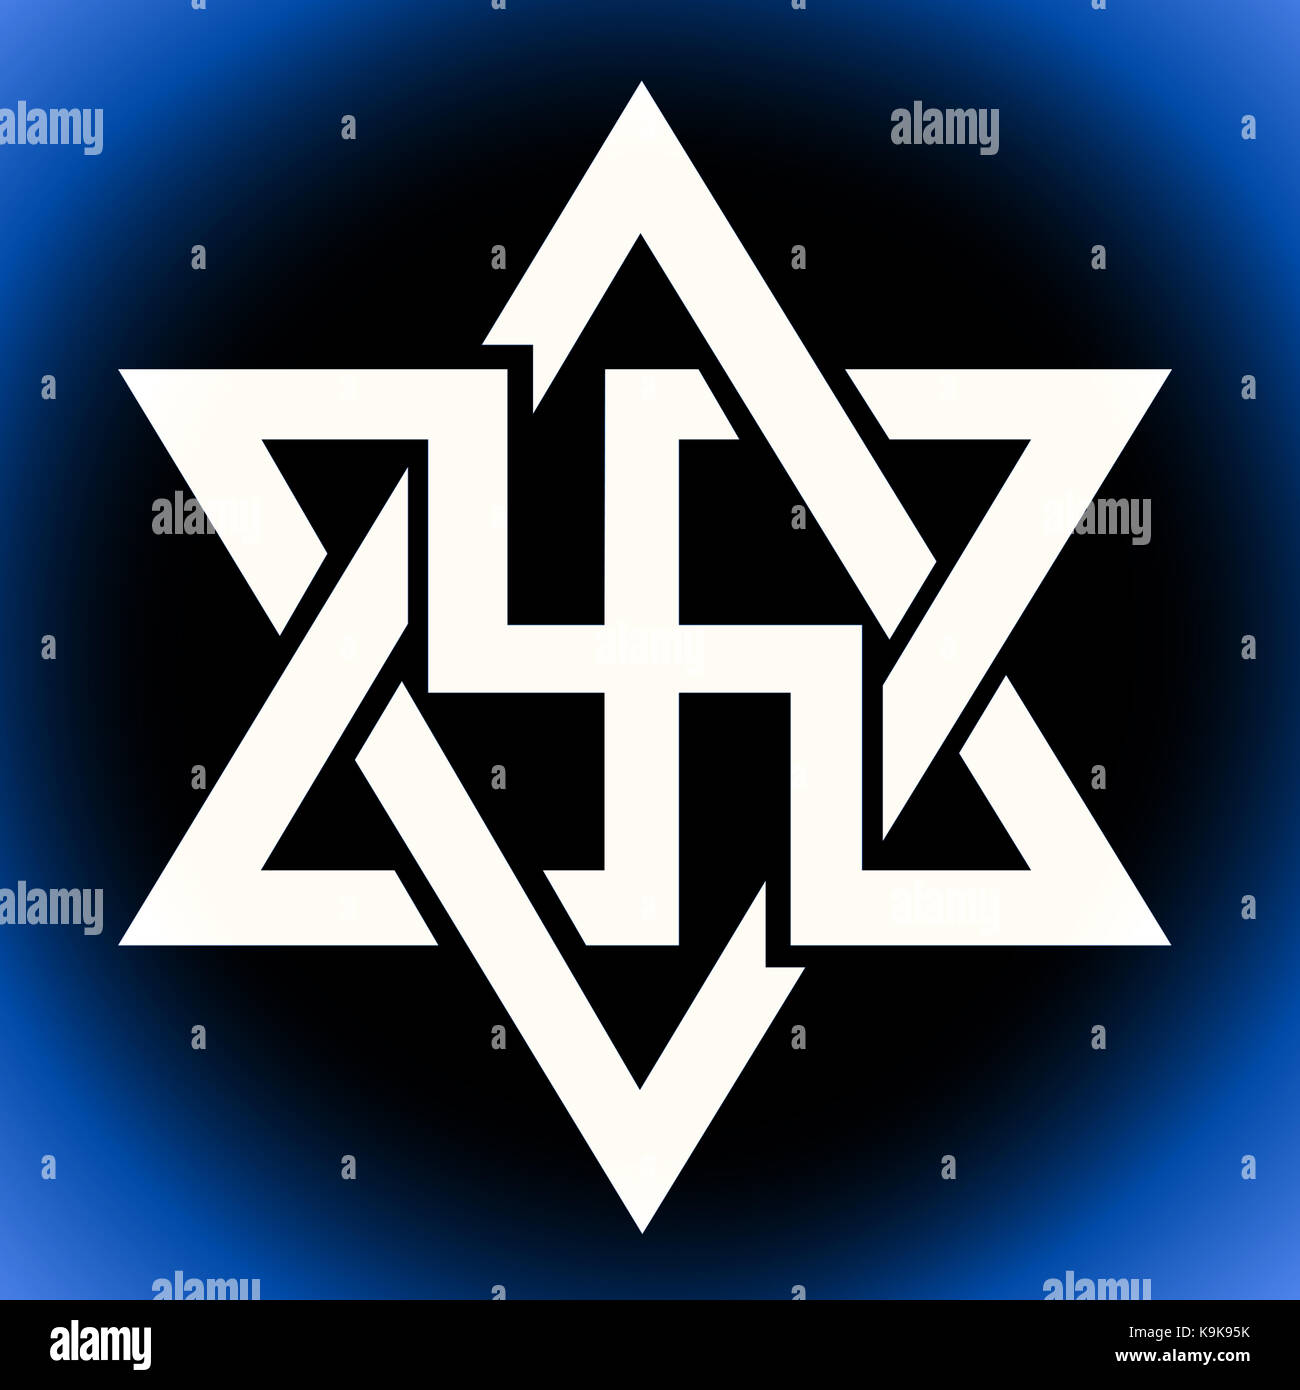 The Raelian Symbol With The Swastika Embedded On The Star Of David